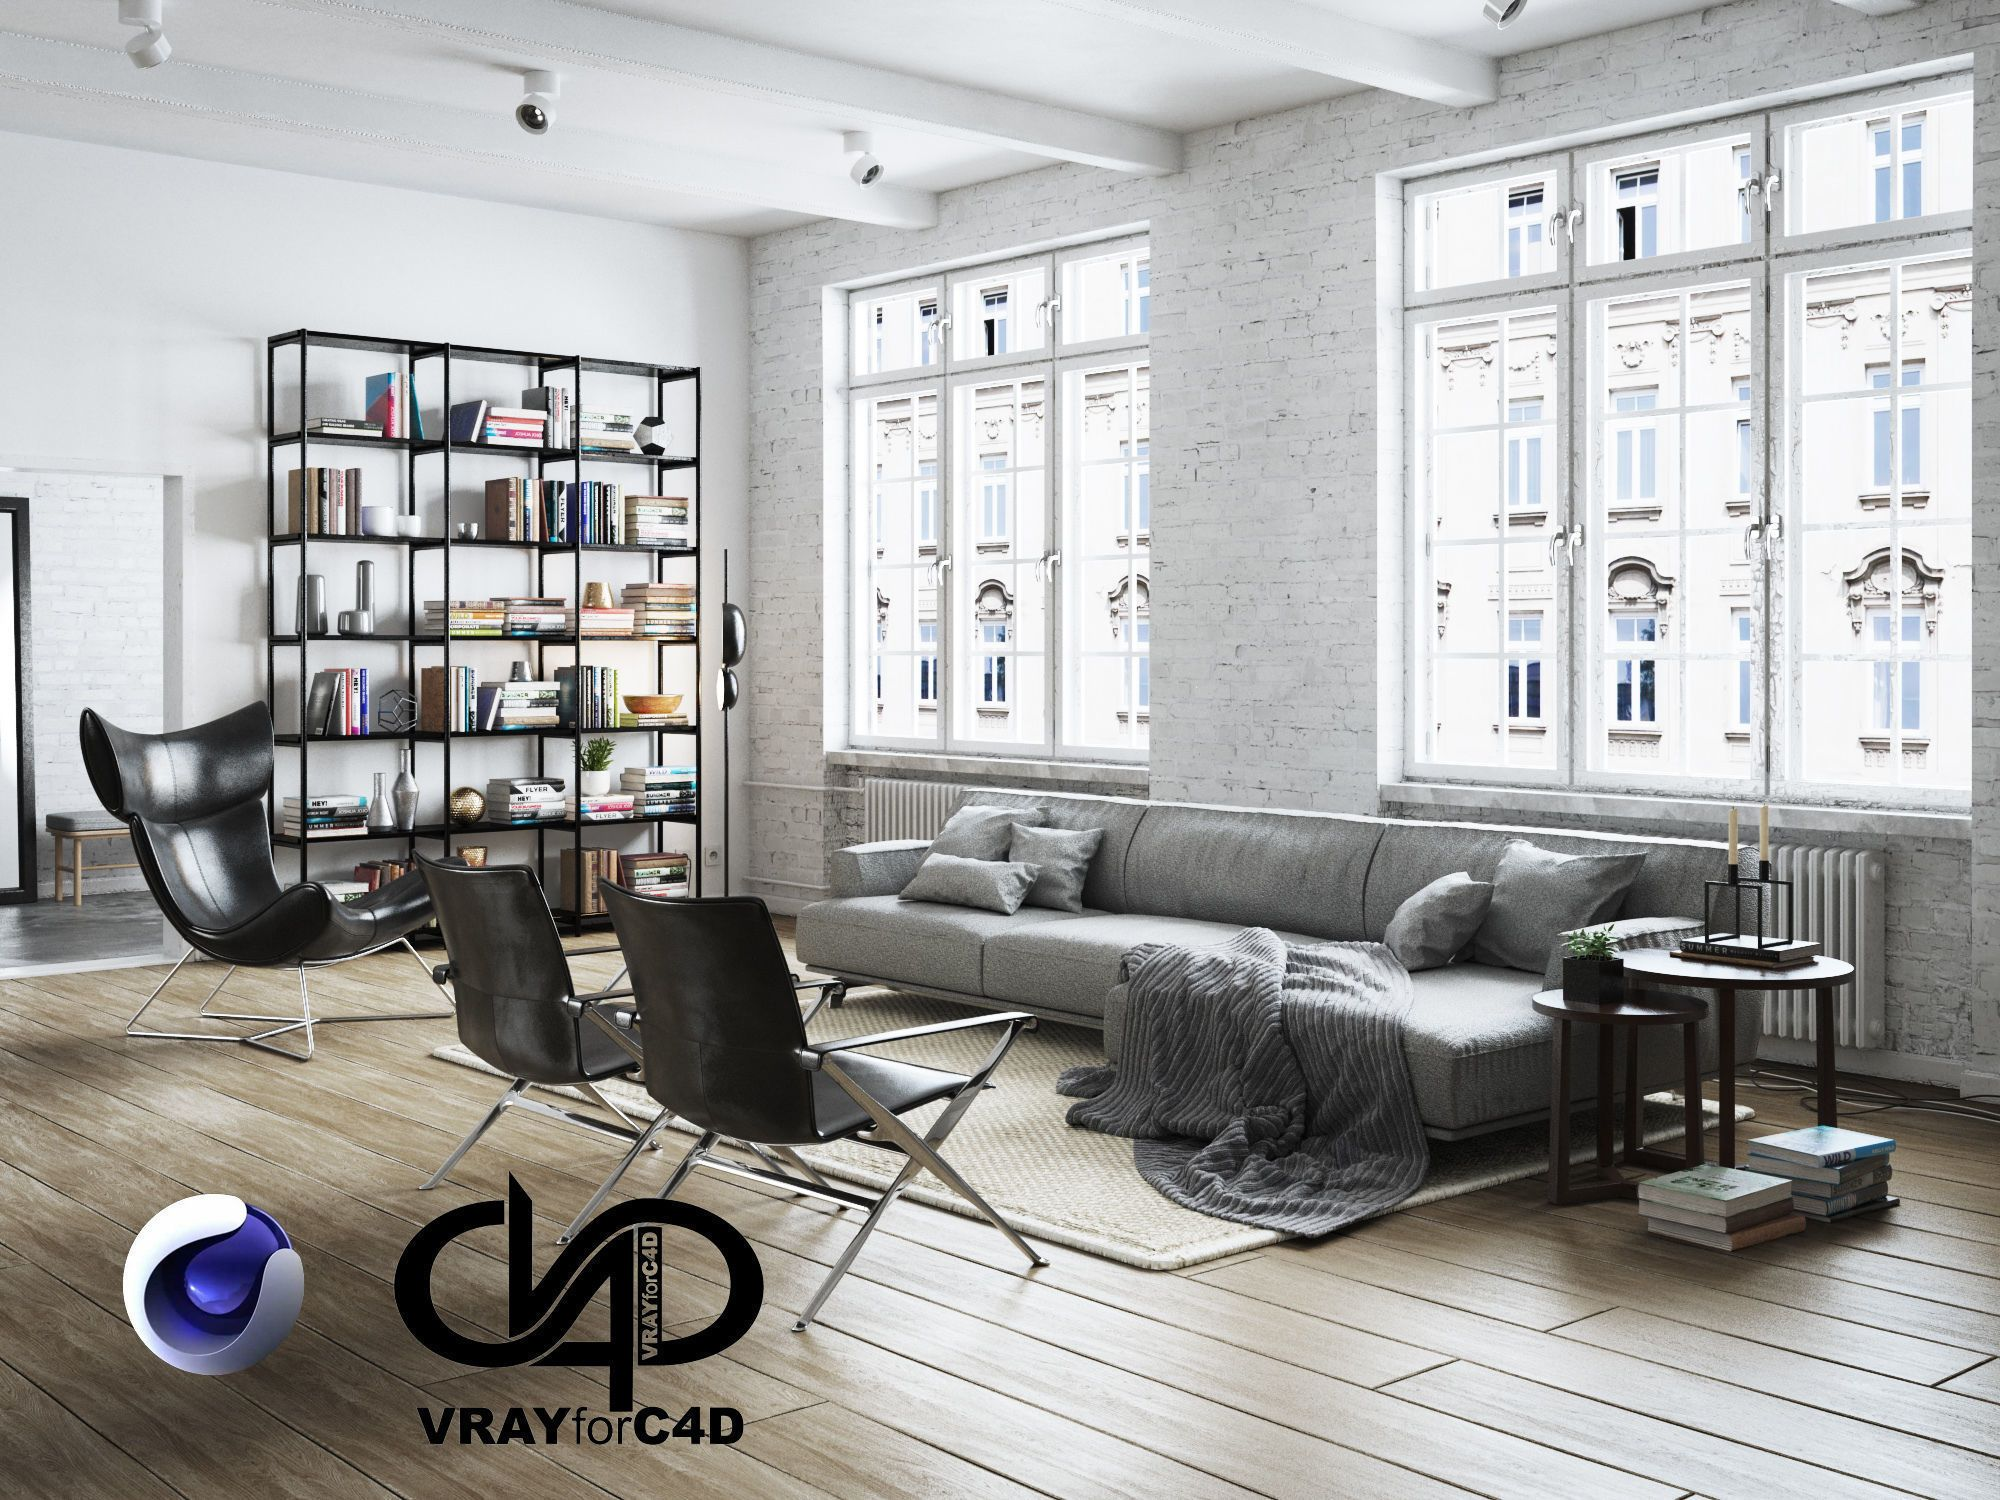 Pin by CGTrader on 3D Architectural Interior in 2019